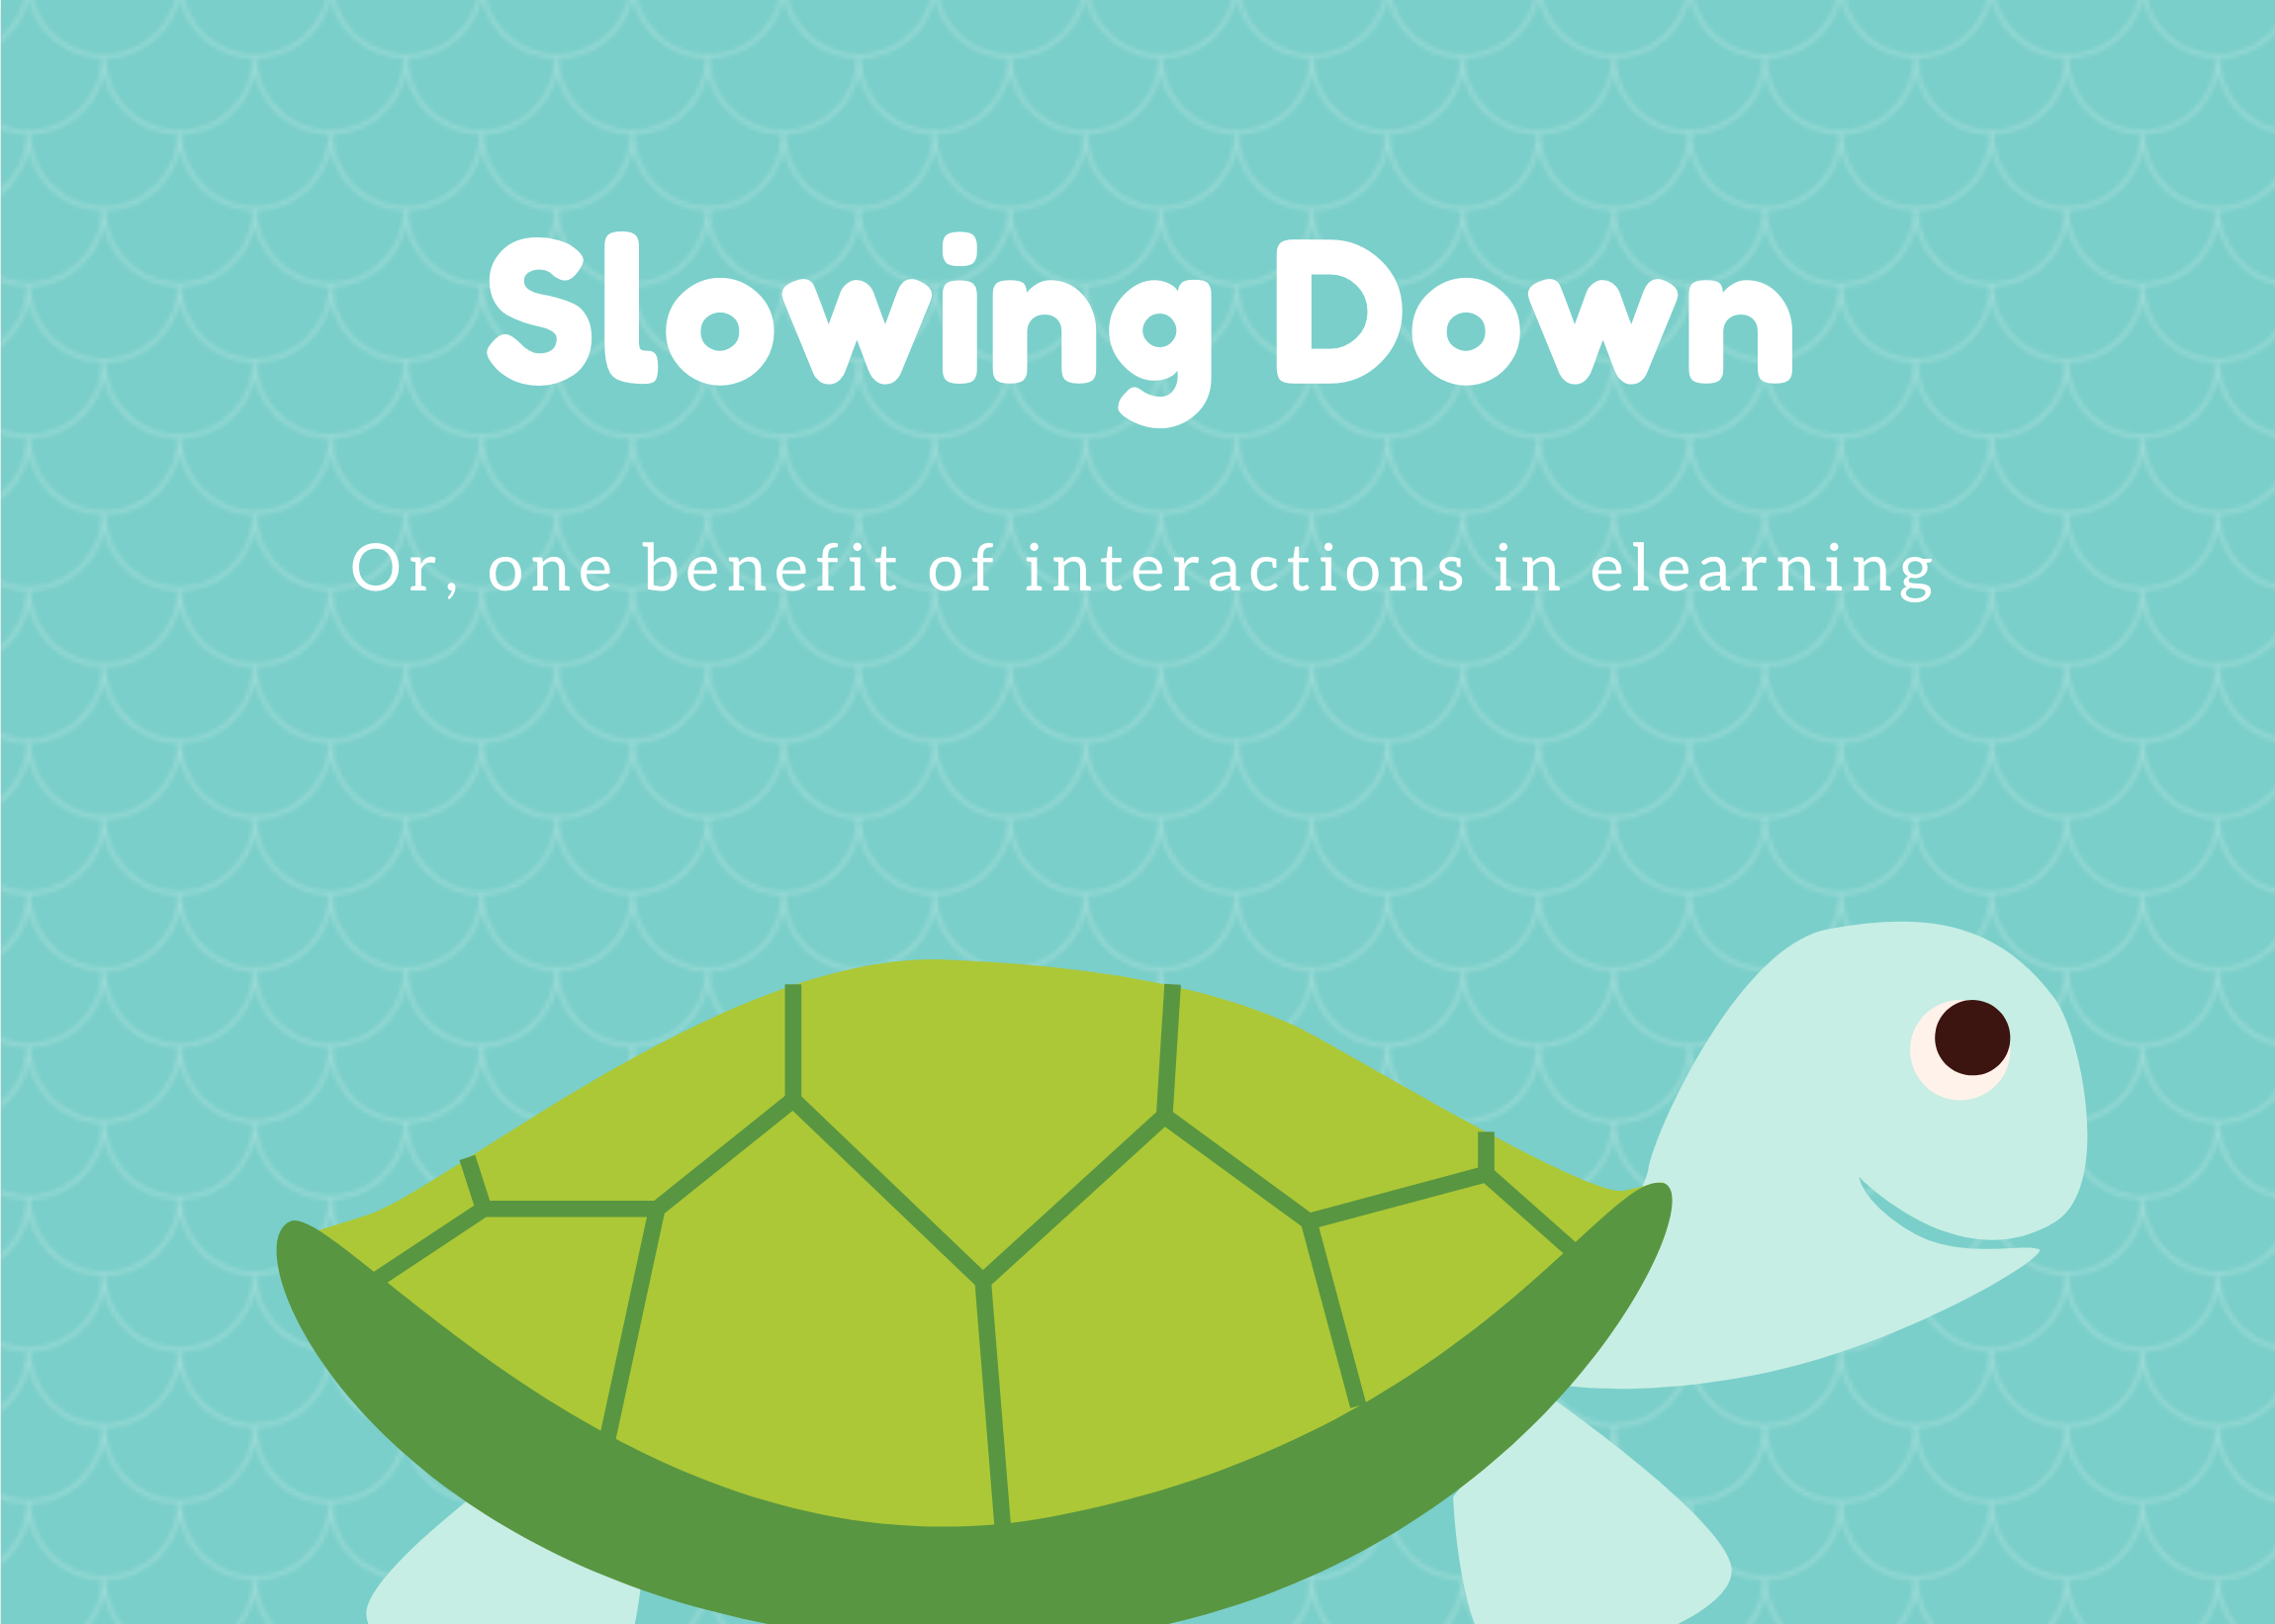 Slowing Down Or, a benefit of interactions in elearning